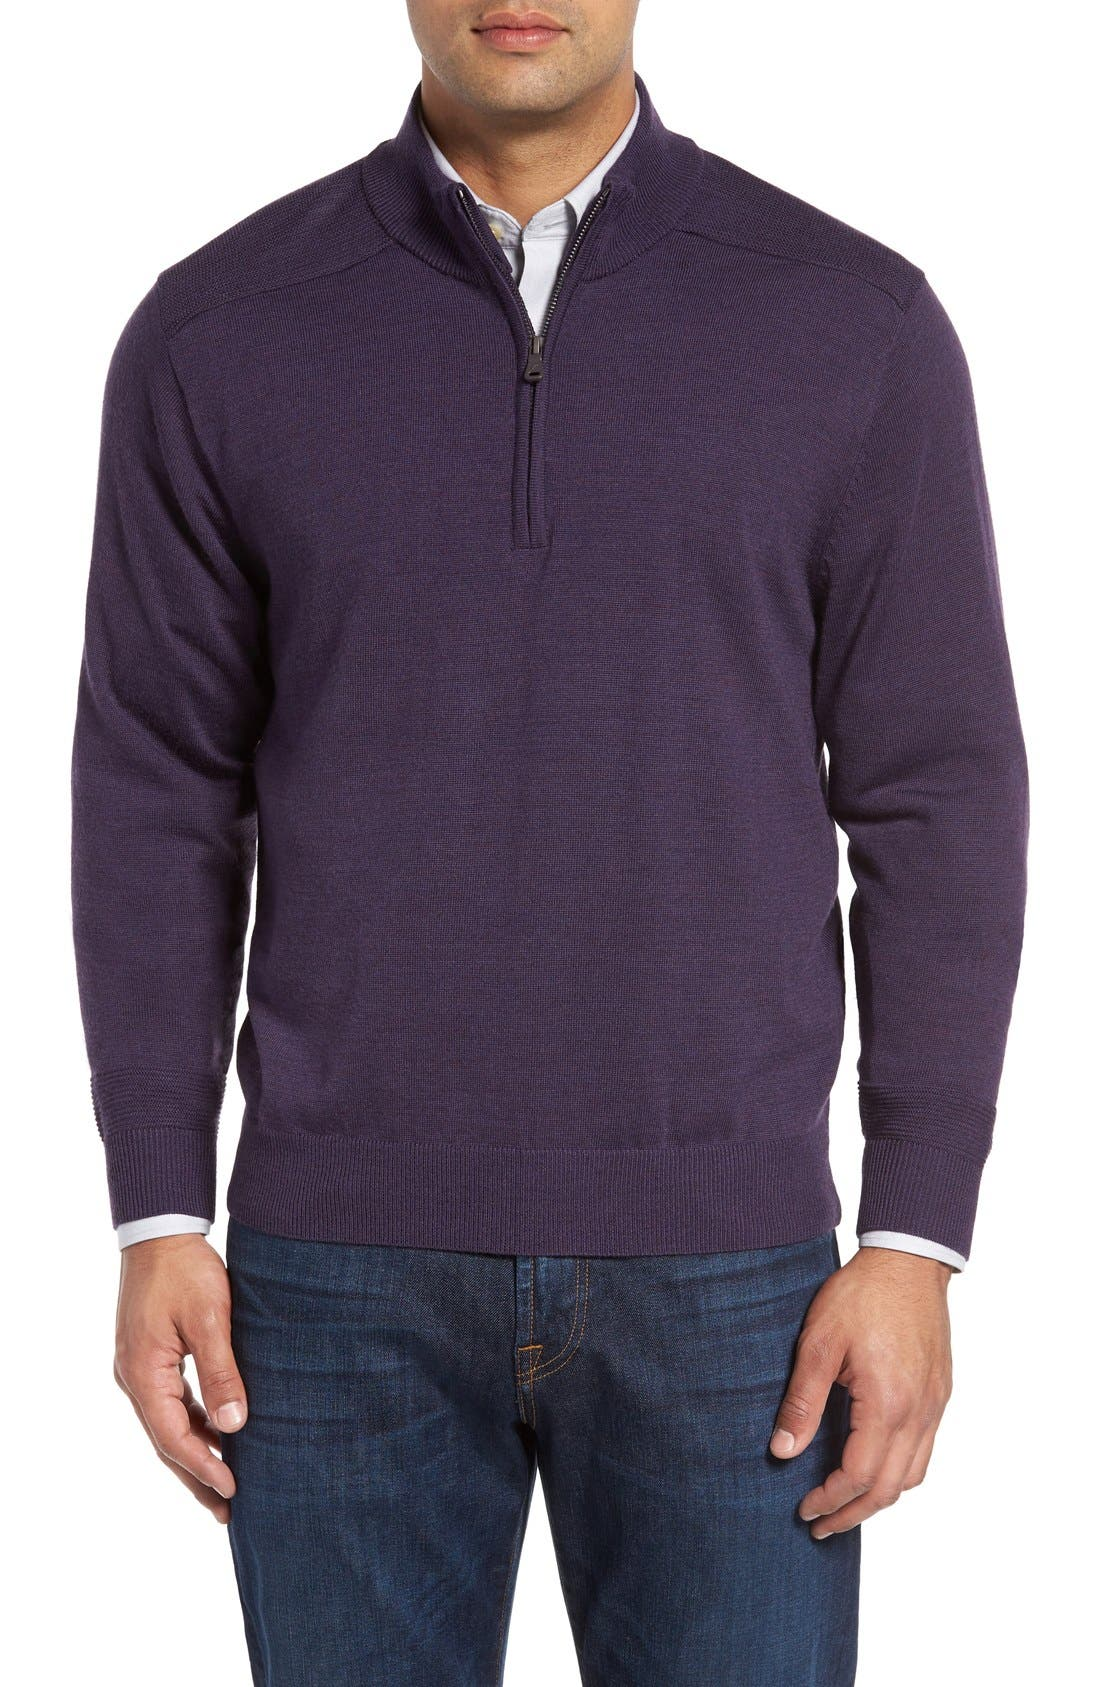 Main Image - Cutter & Buck Douglas Quarter Zip Wool Blend Sweater